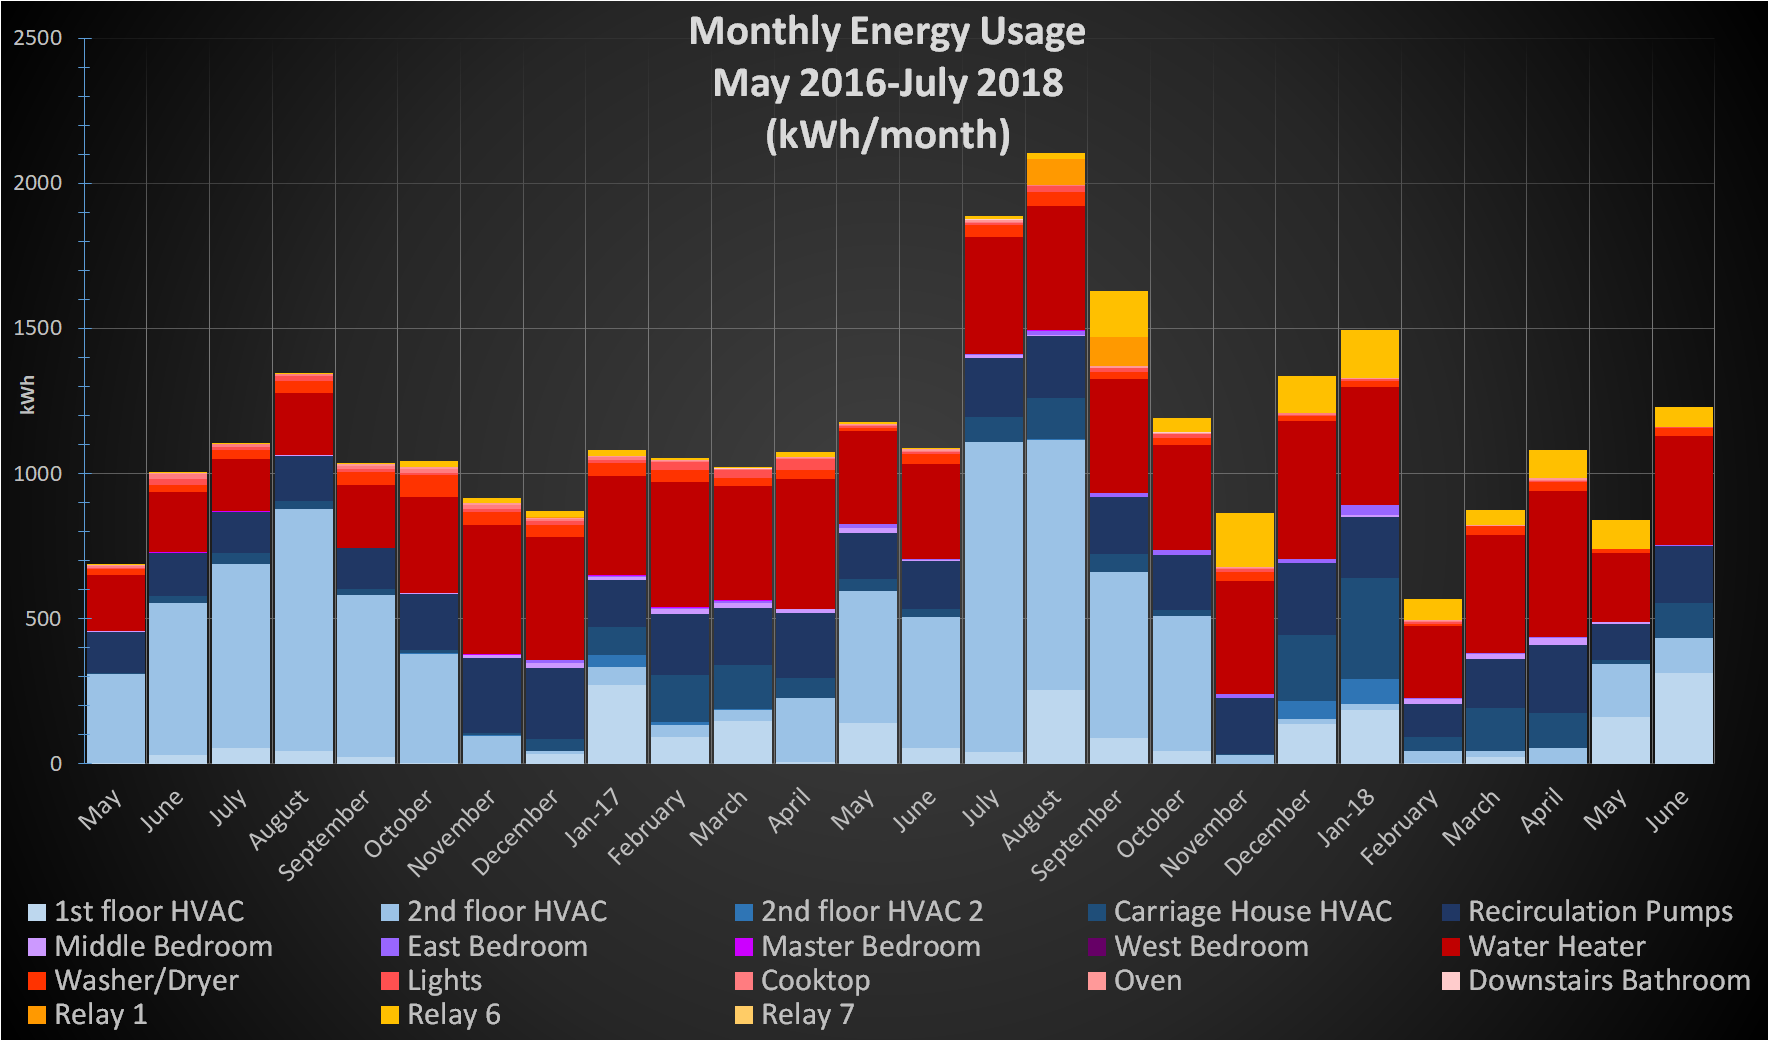 FFH monthly energy usage may16-july18.png